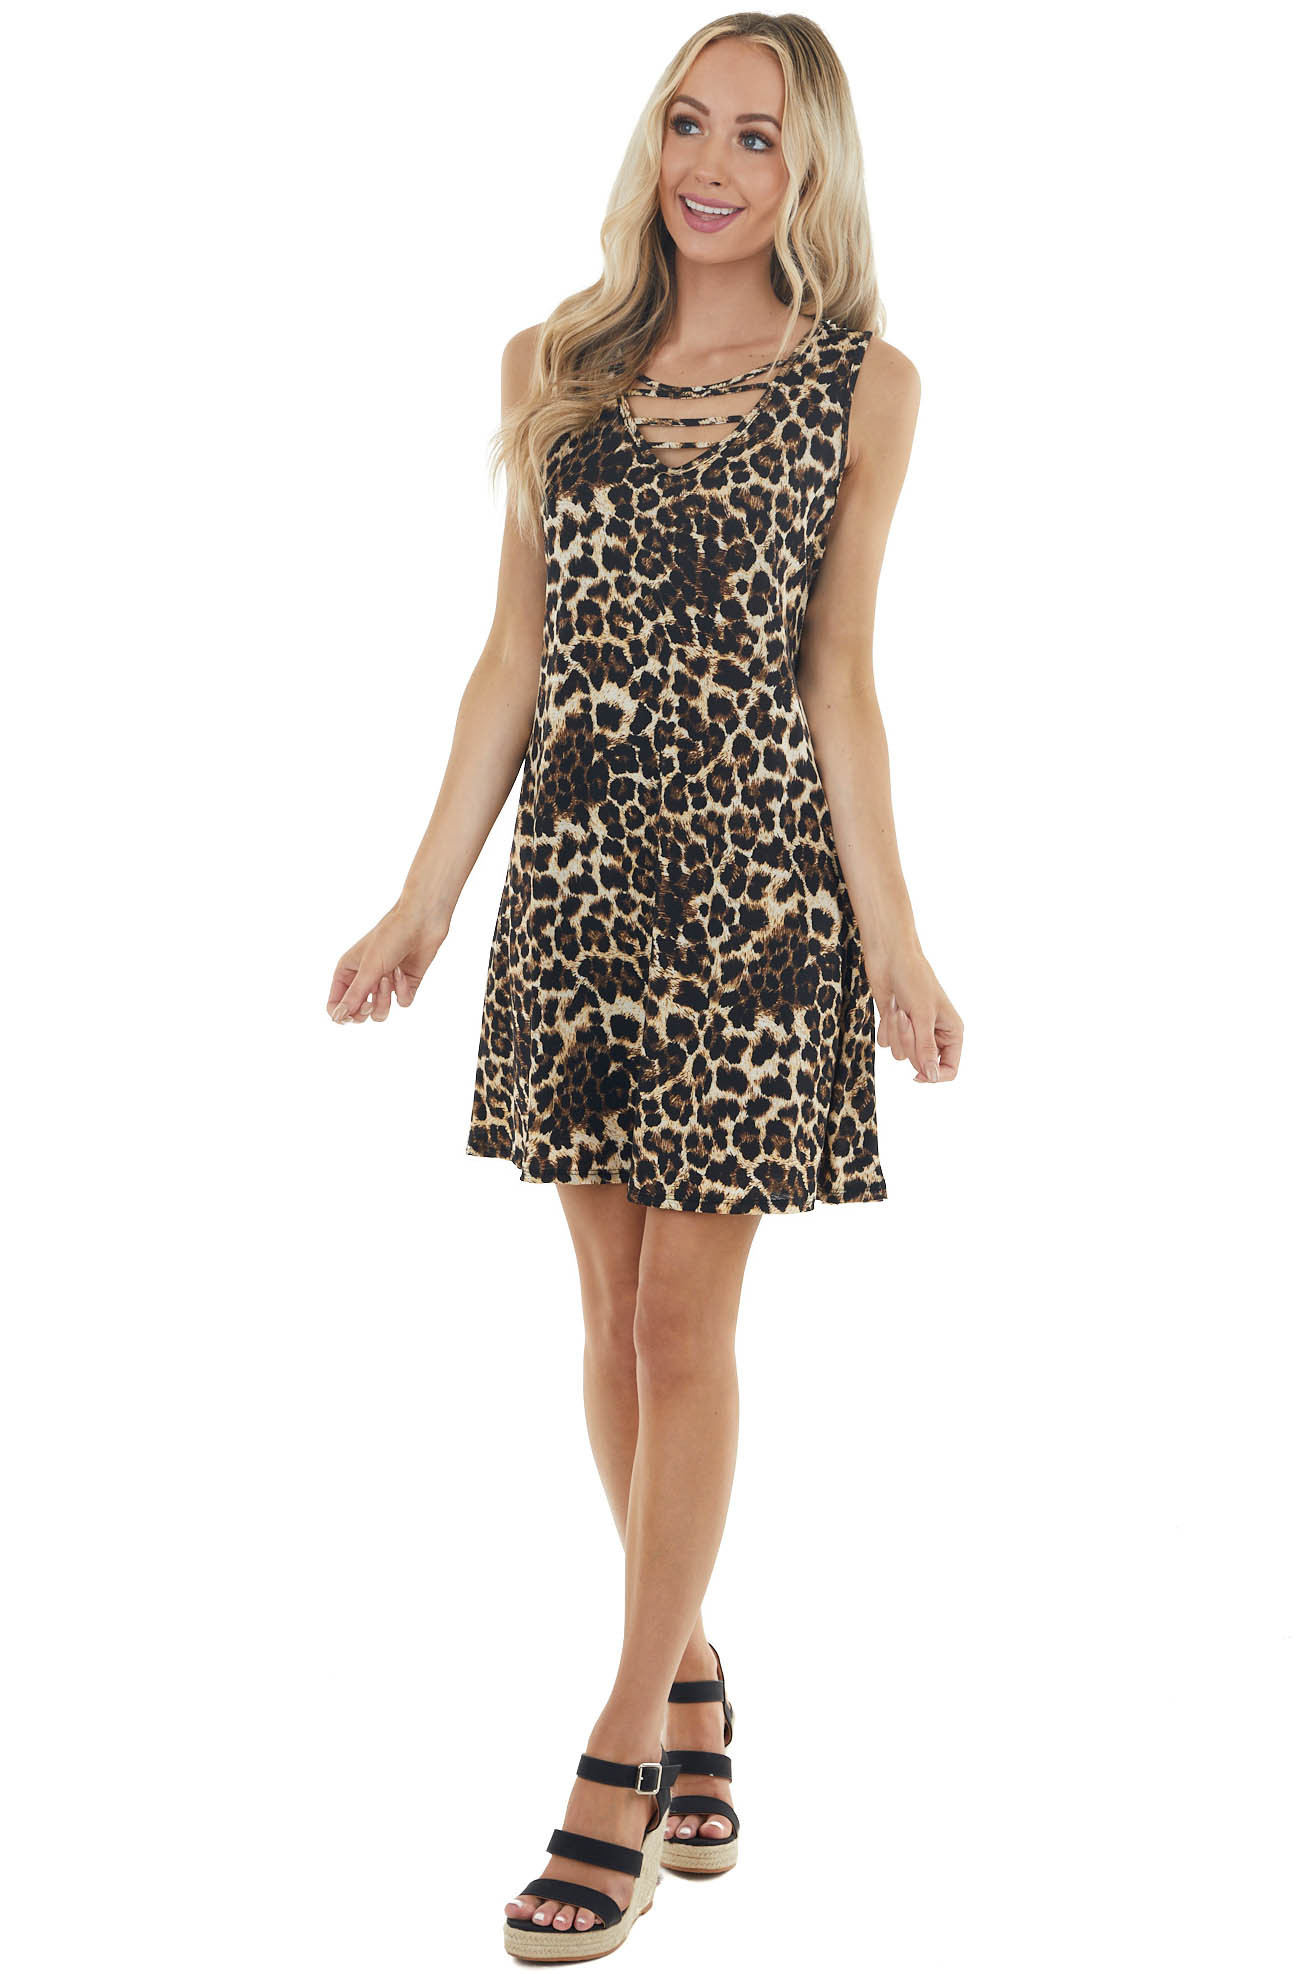 Cream Leopard Print Sleeveless Short Dress with Caged Chest